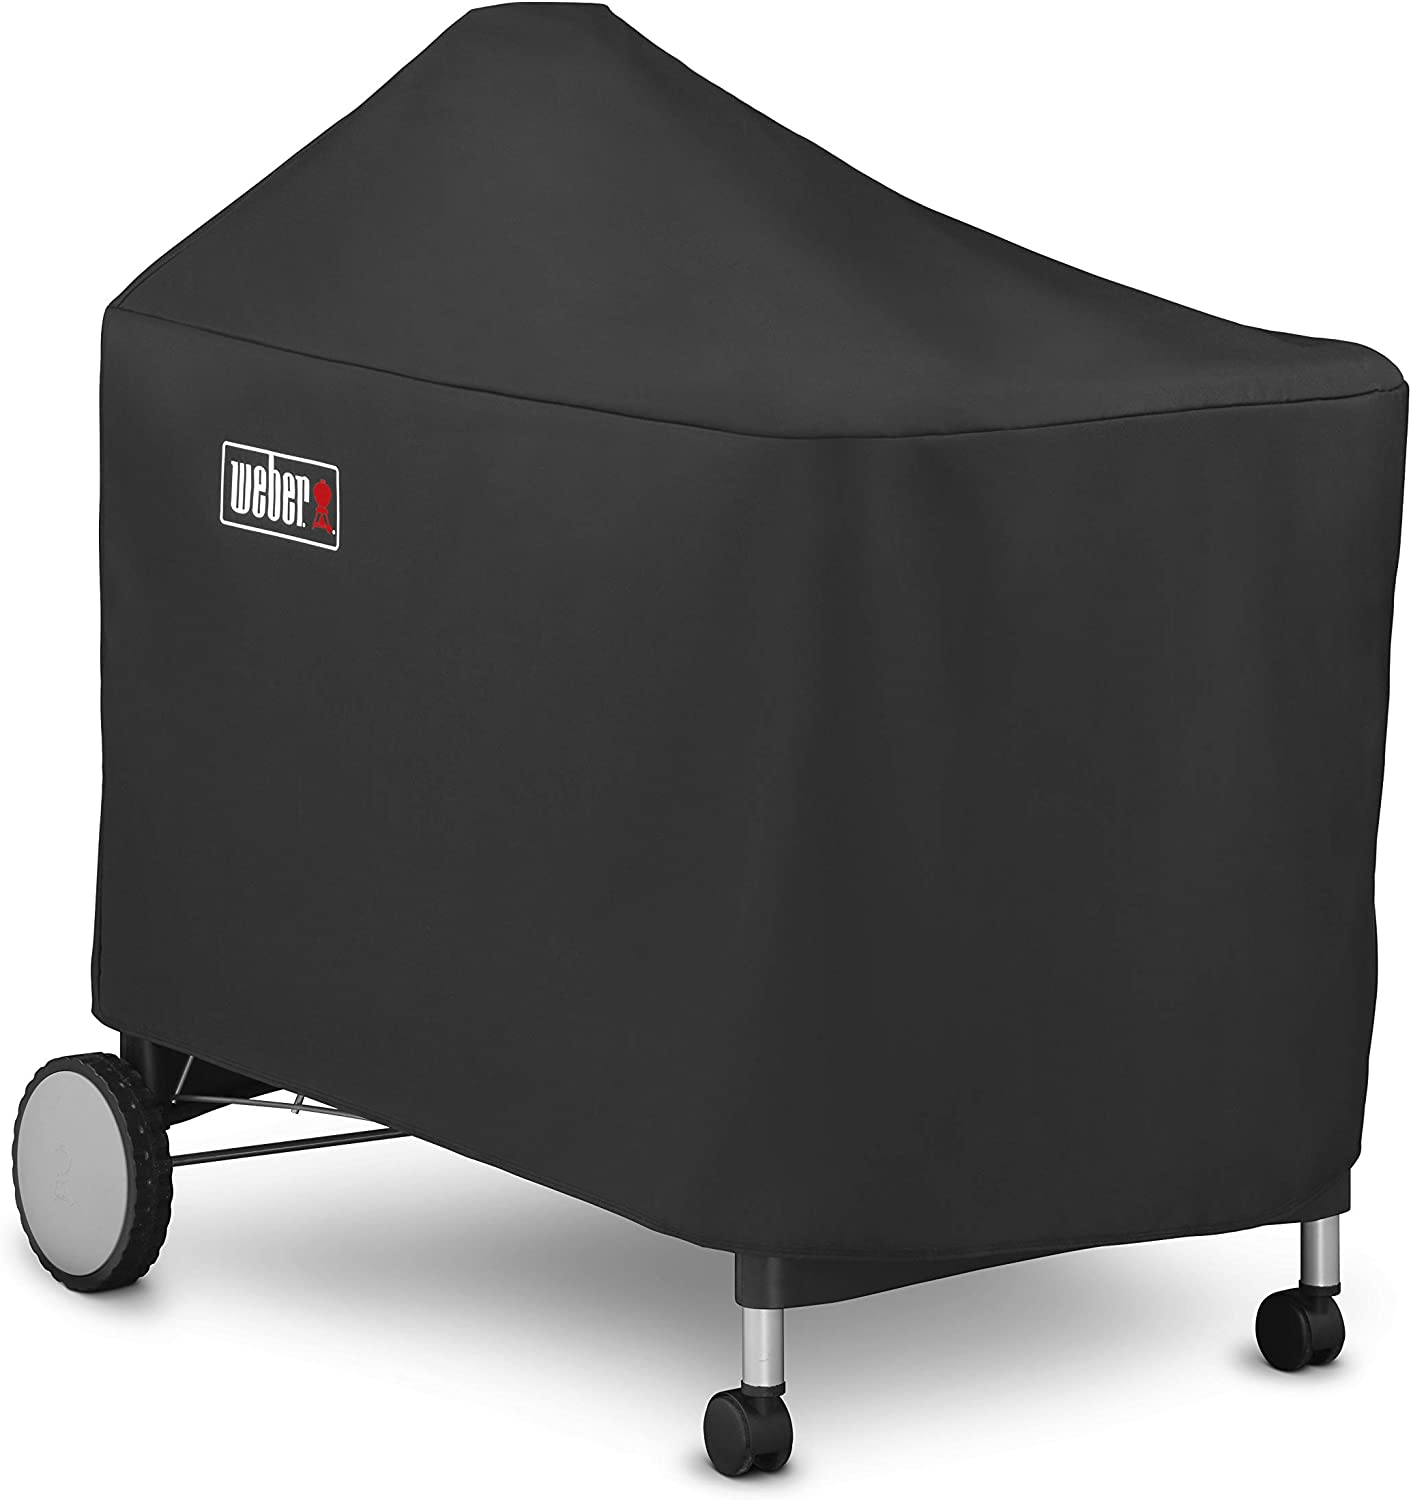 Weber 7152 Grill Cover for Performer Premium and Deluxe, 22 Inch,Black